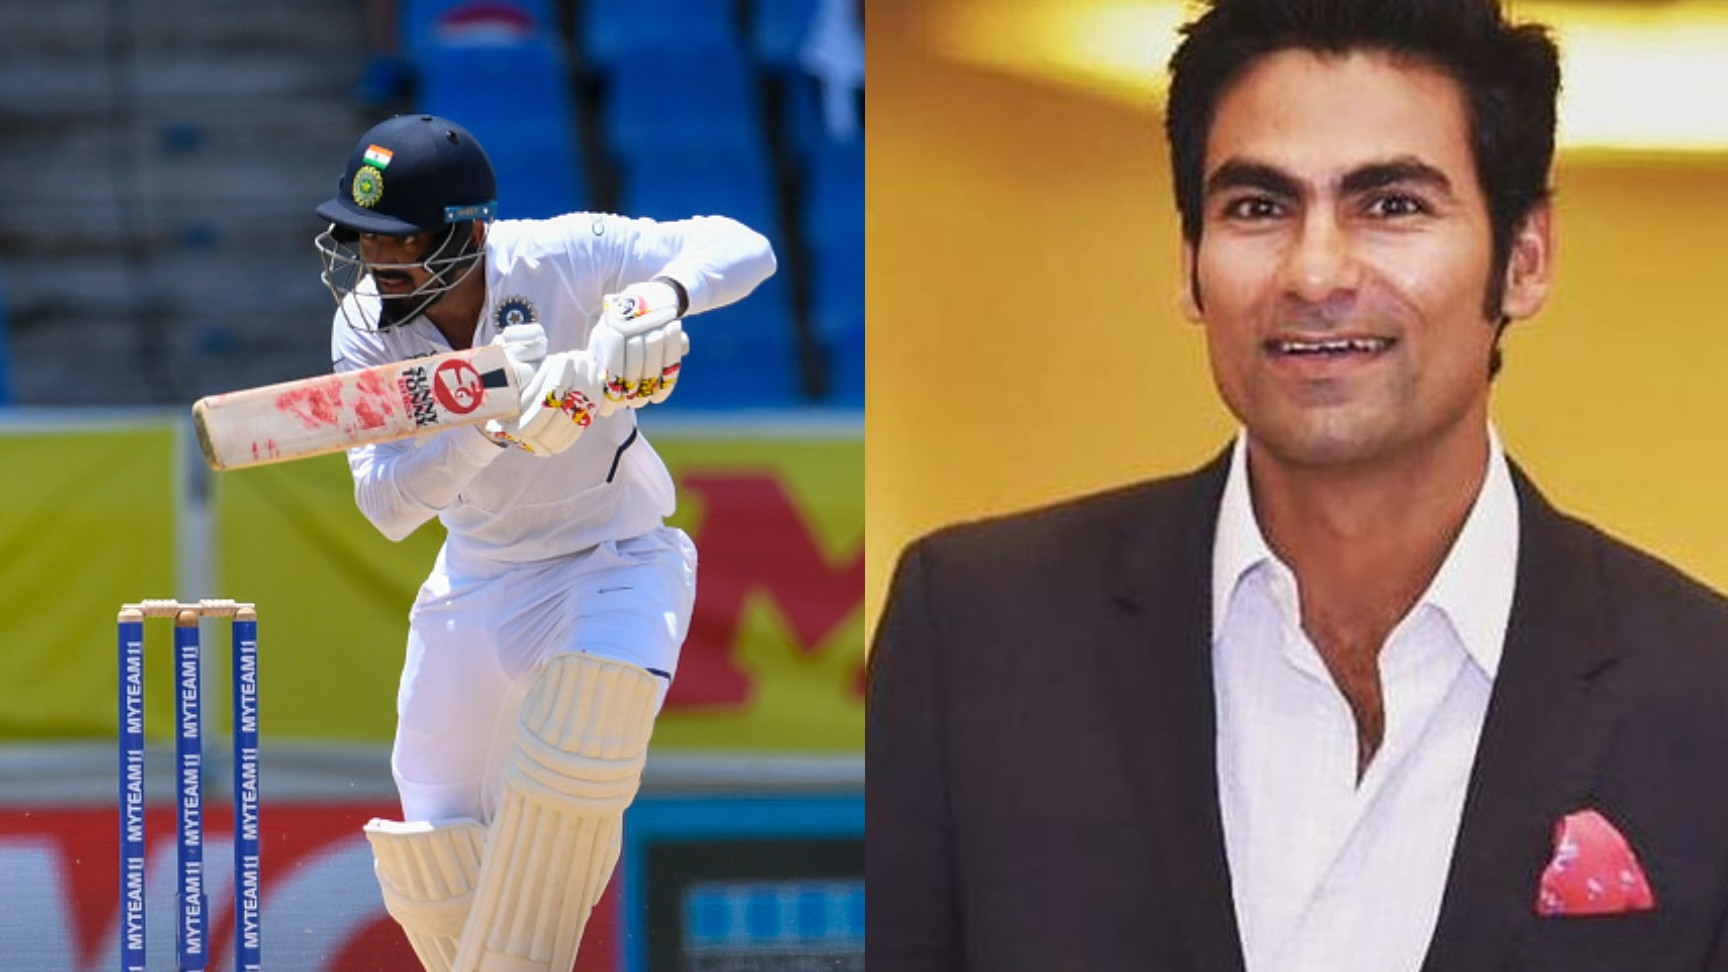 AUS v IND 2020-21: Mohammad Kaif reveals why KL Rahul should play the Boxing Day Test in MCG